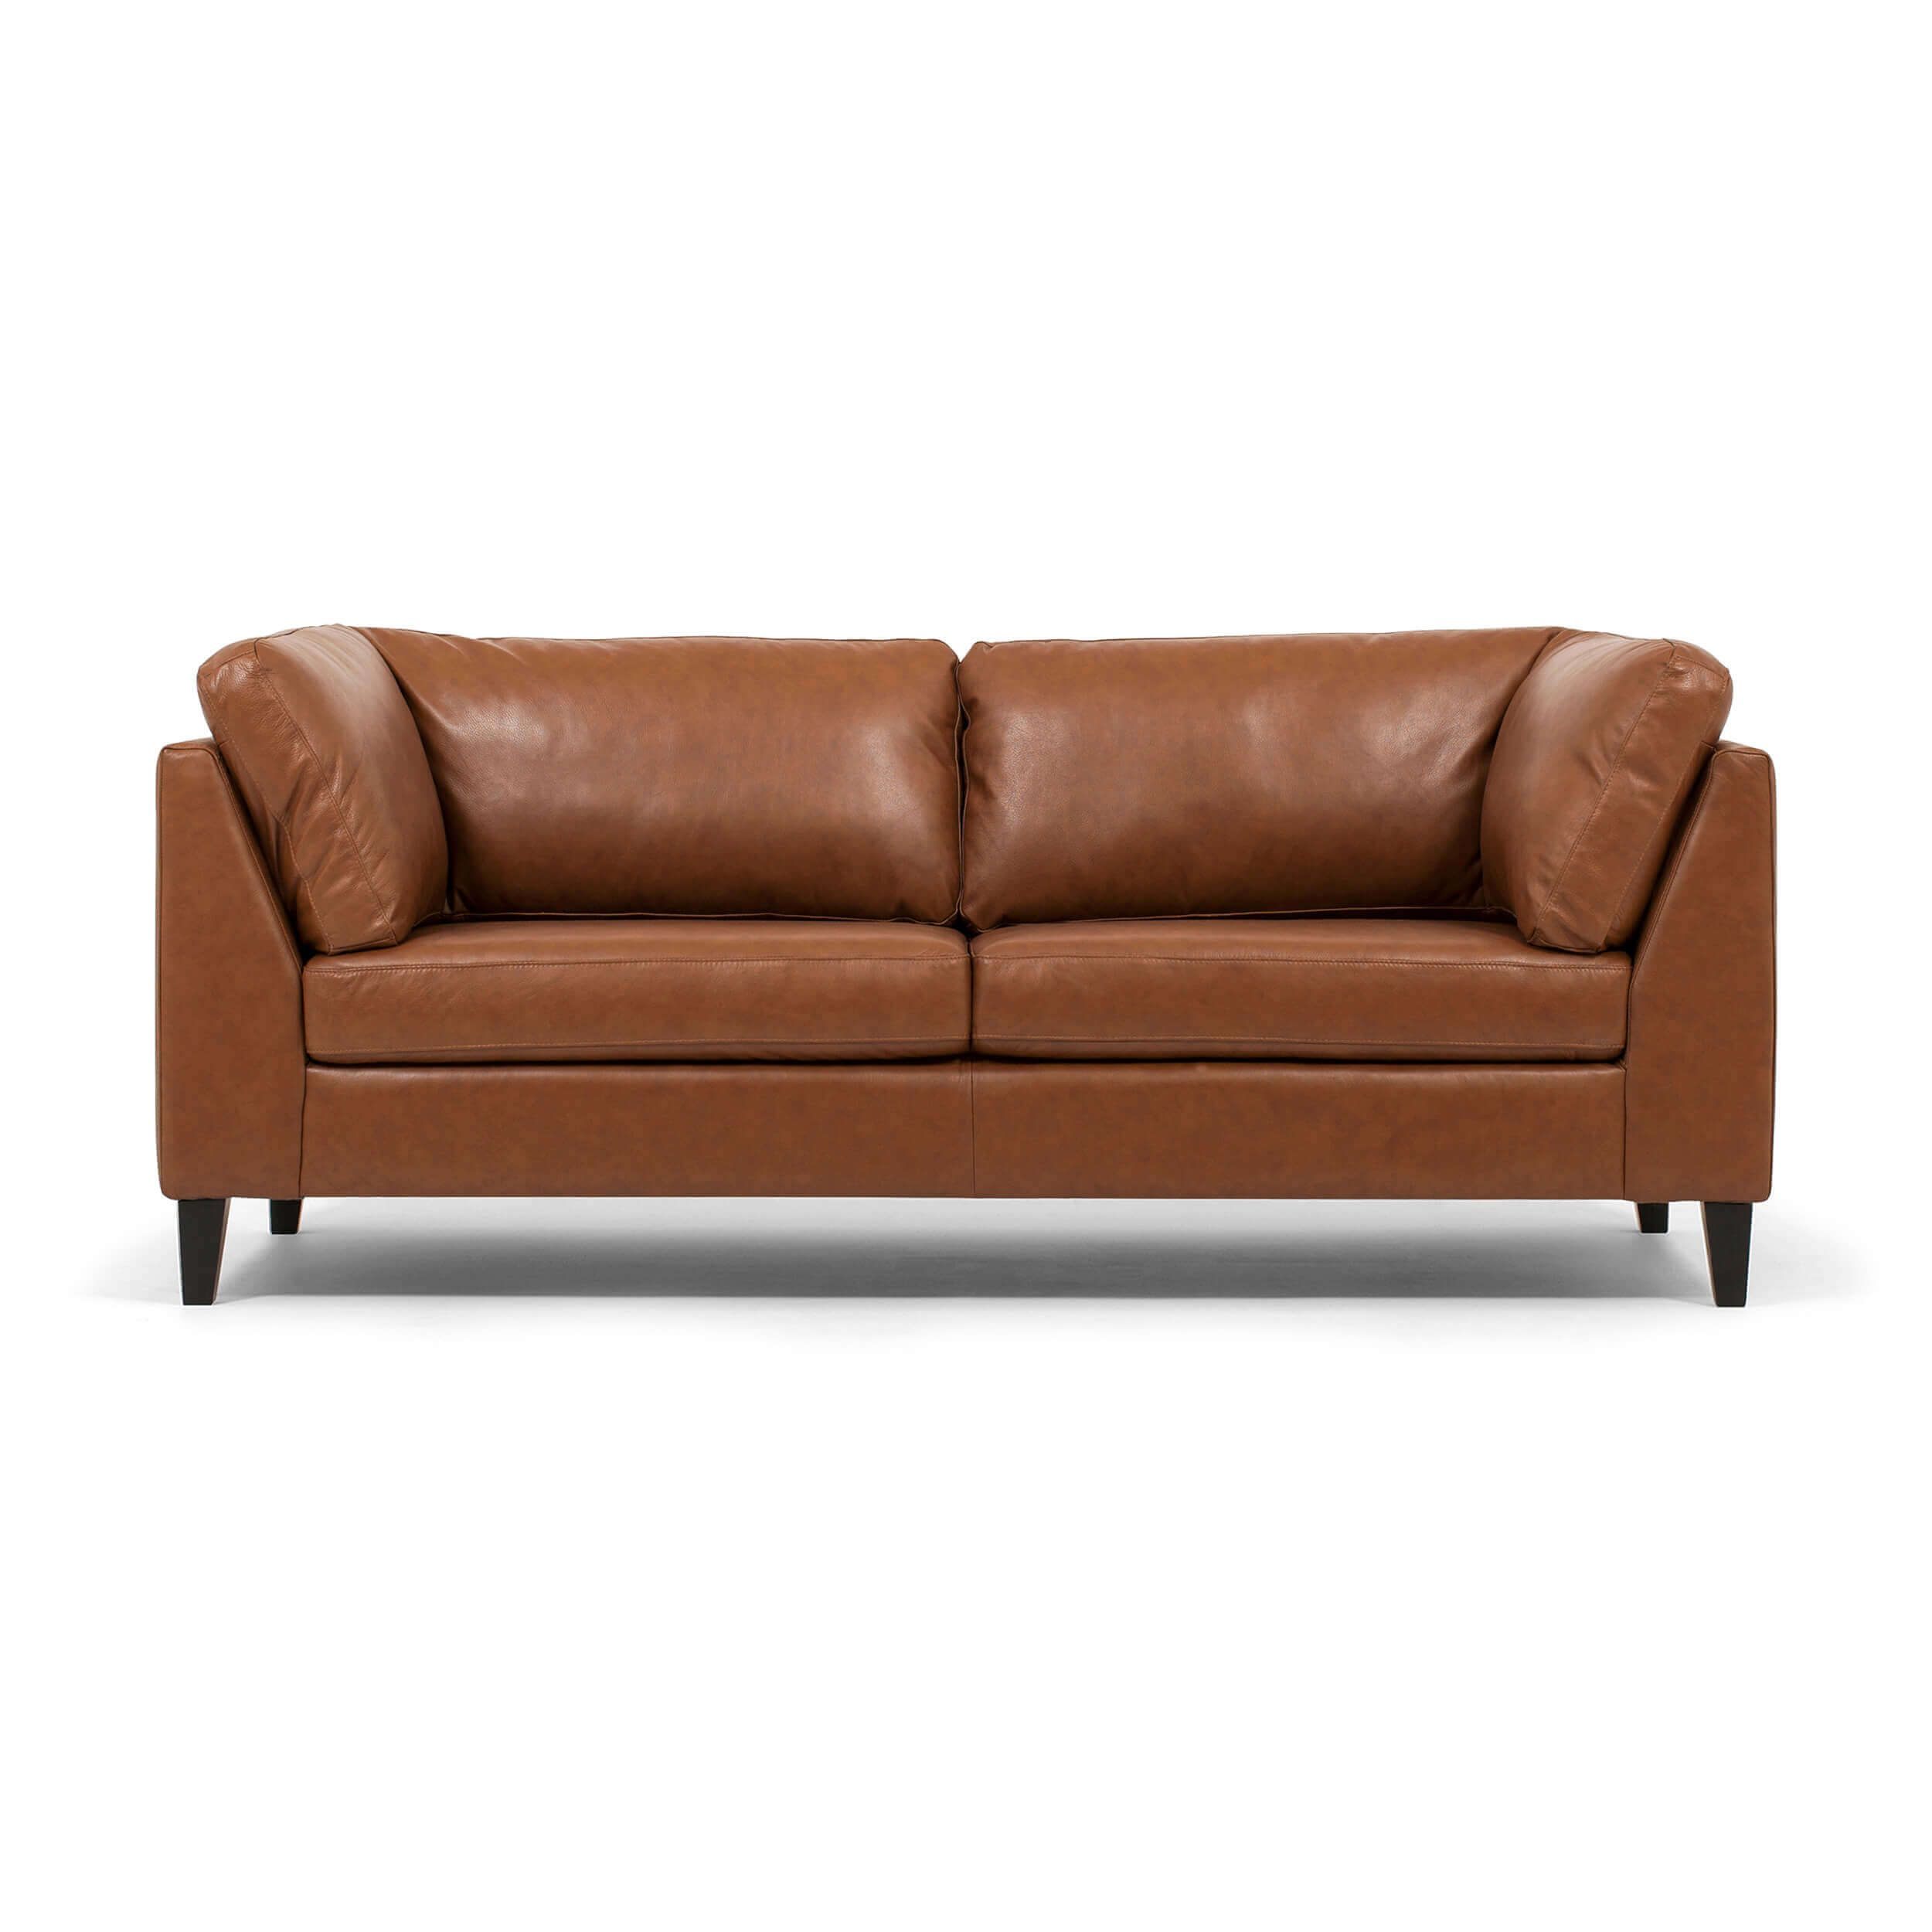 EQ3 Salema Apartment Sofa - Leather | Products in 2019 ...